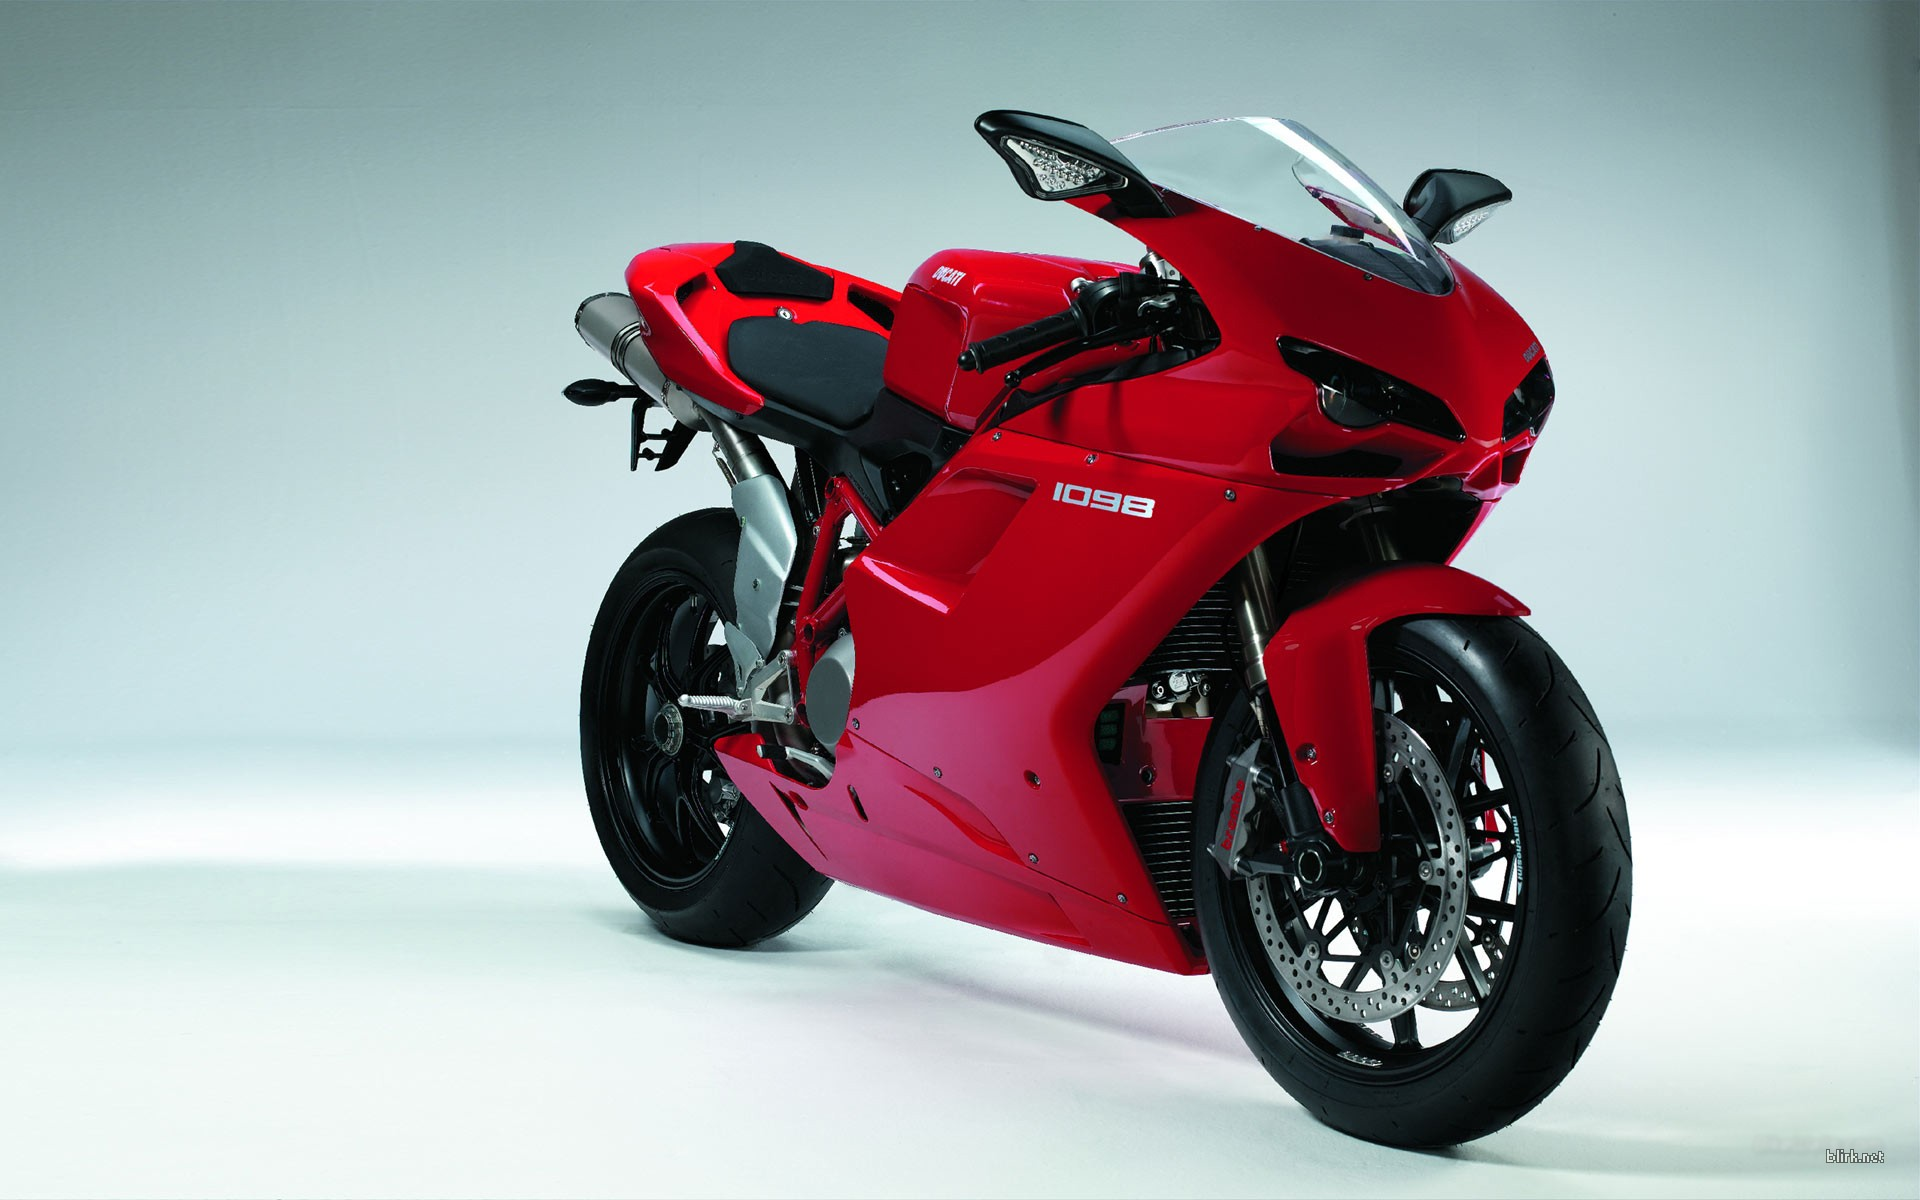 Ducati Red Motorcycle